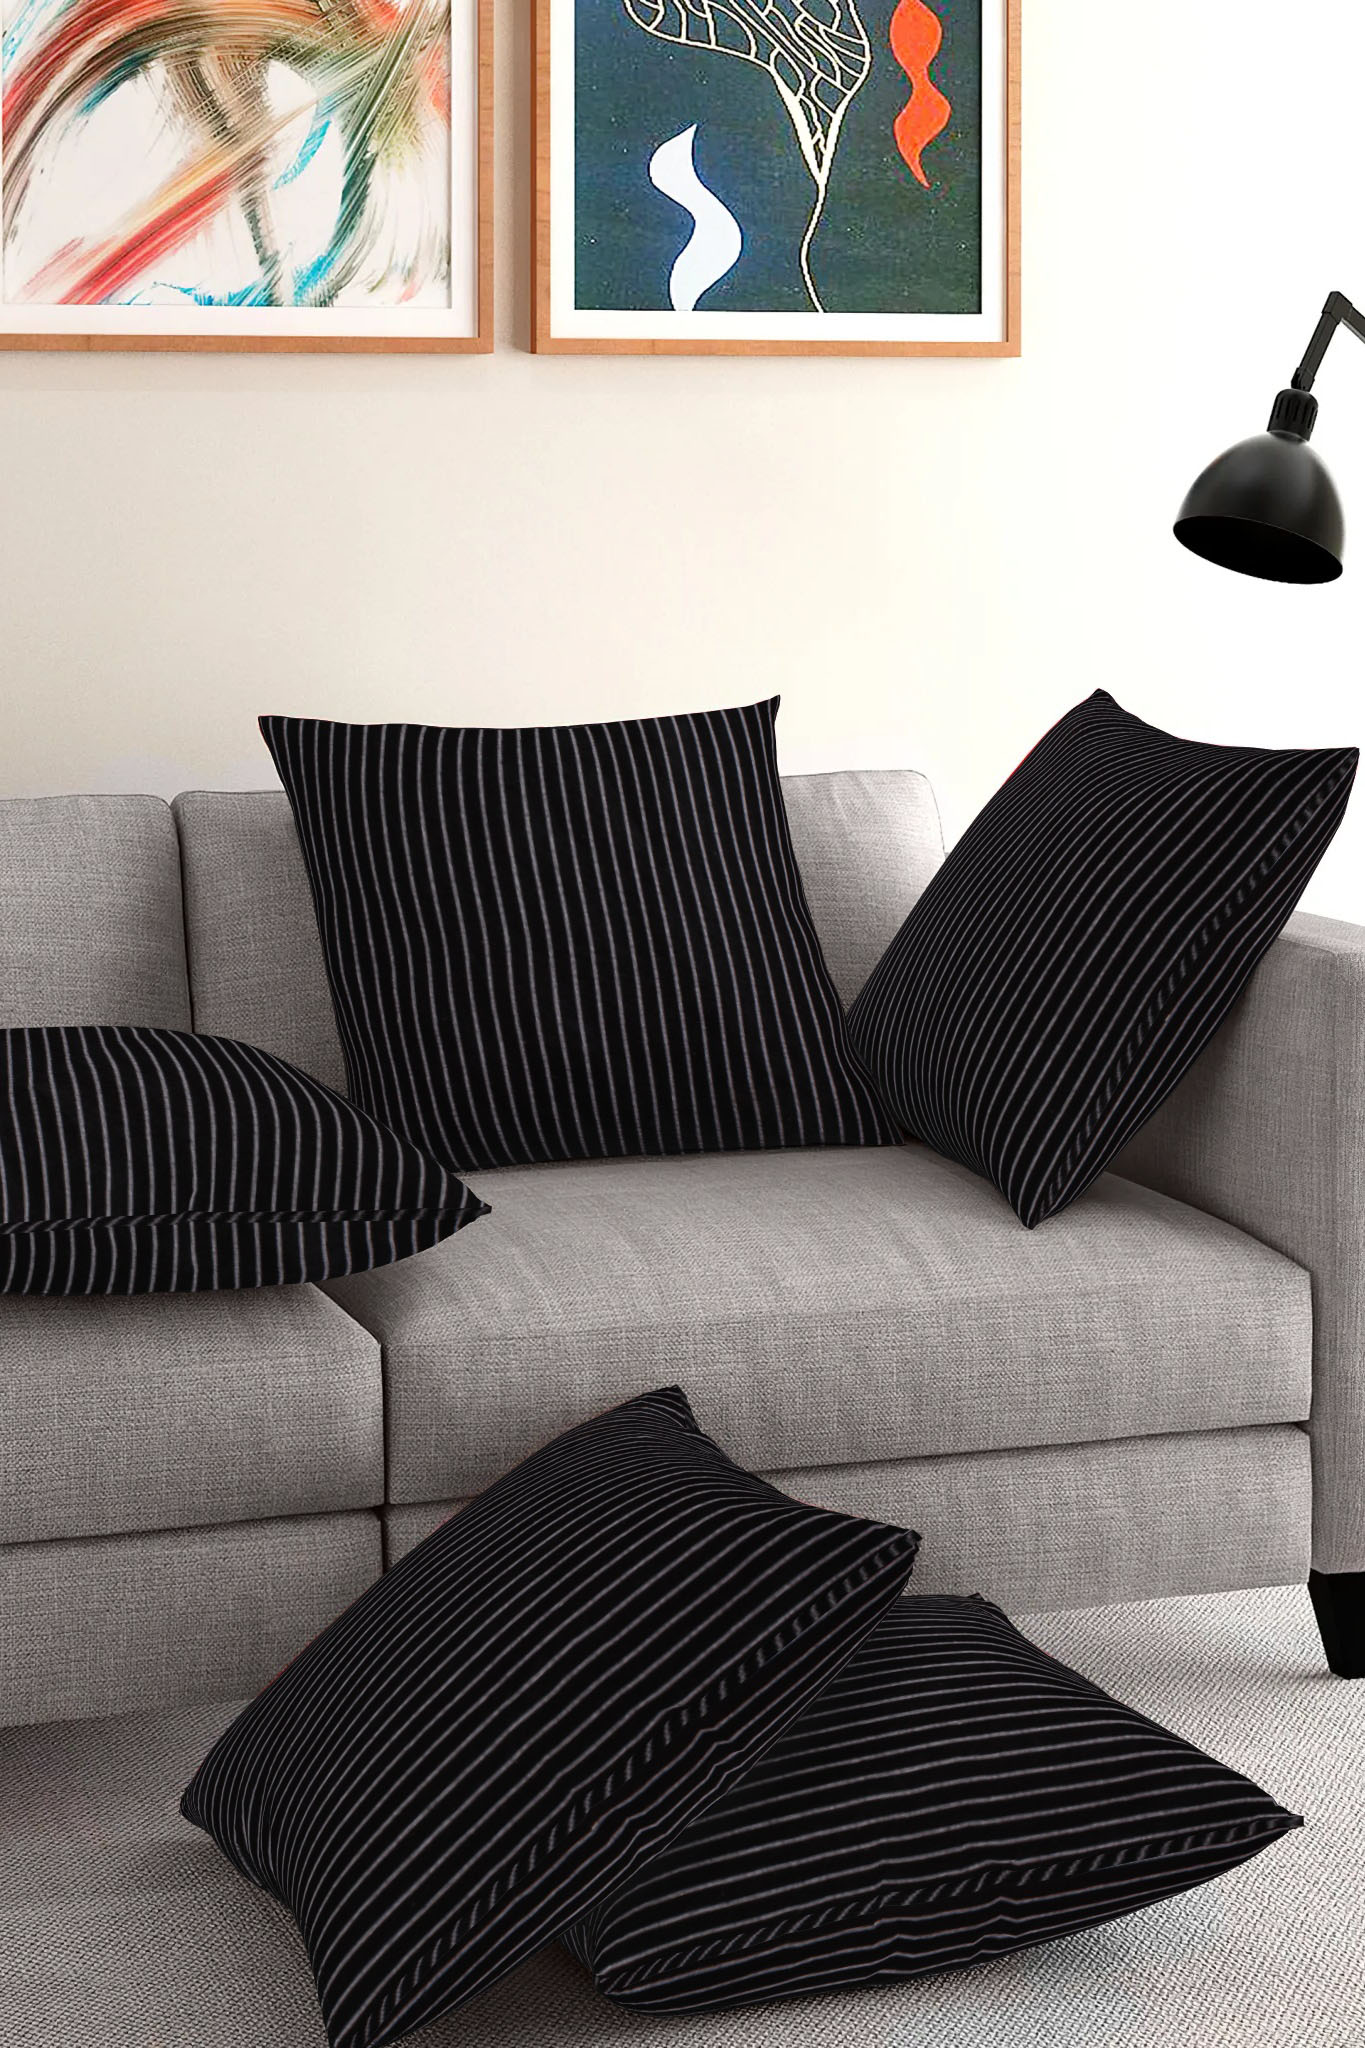 Set of 5-Black White Cotton Cushion Cover-35373-16x16 Inches